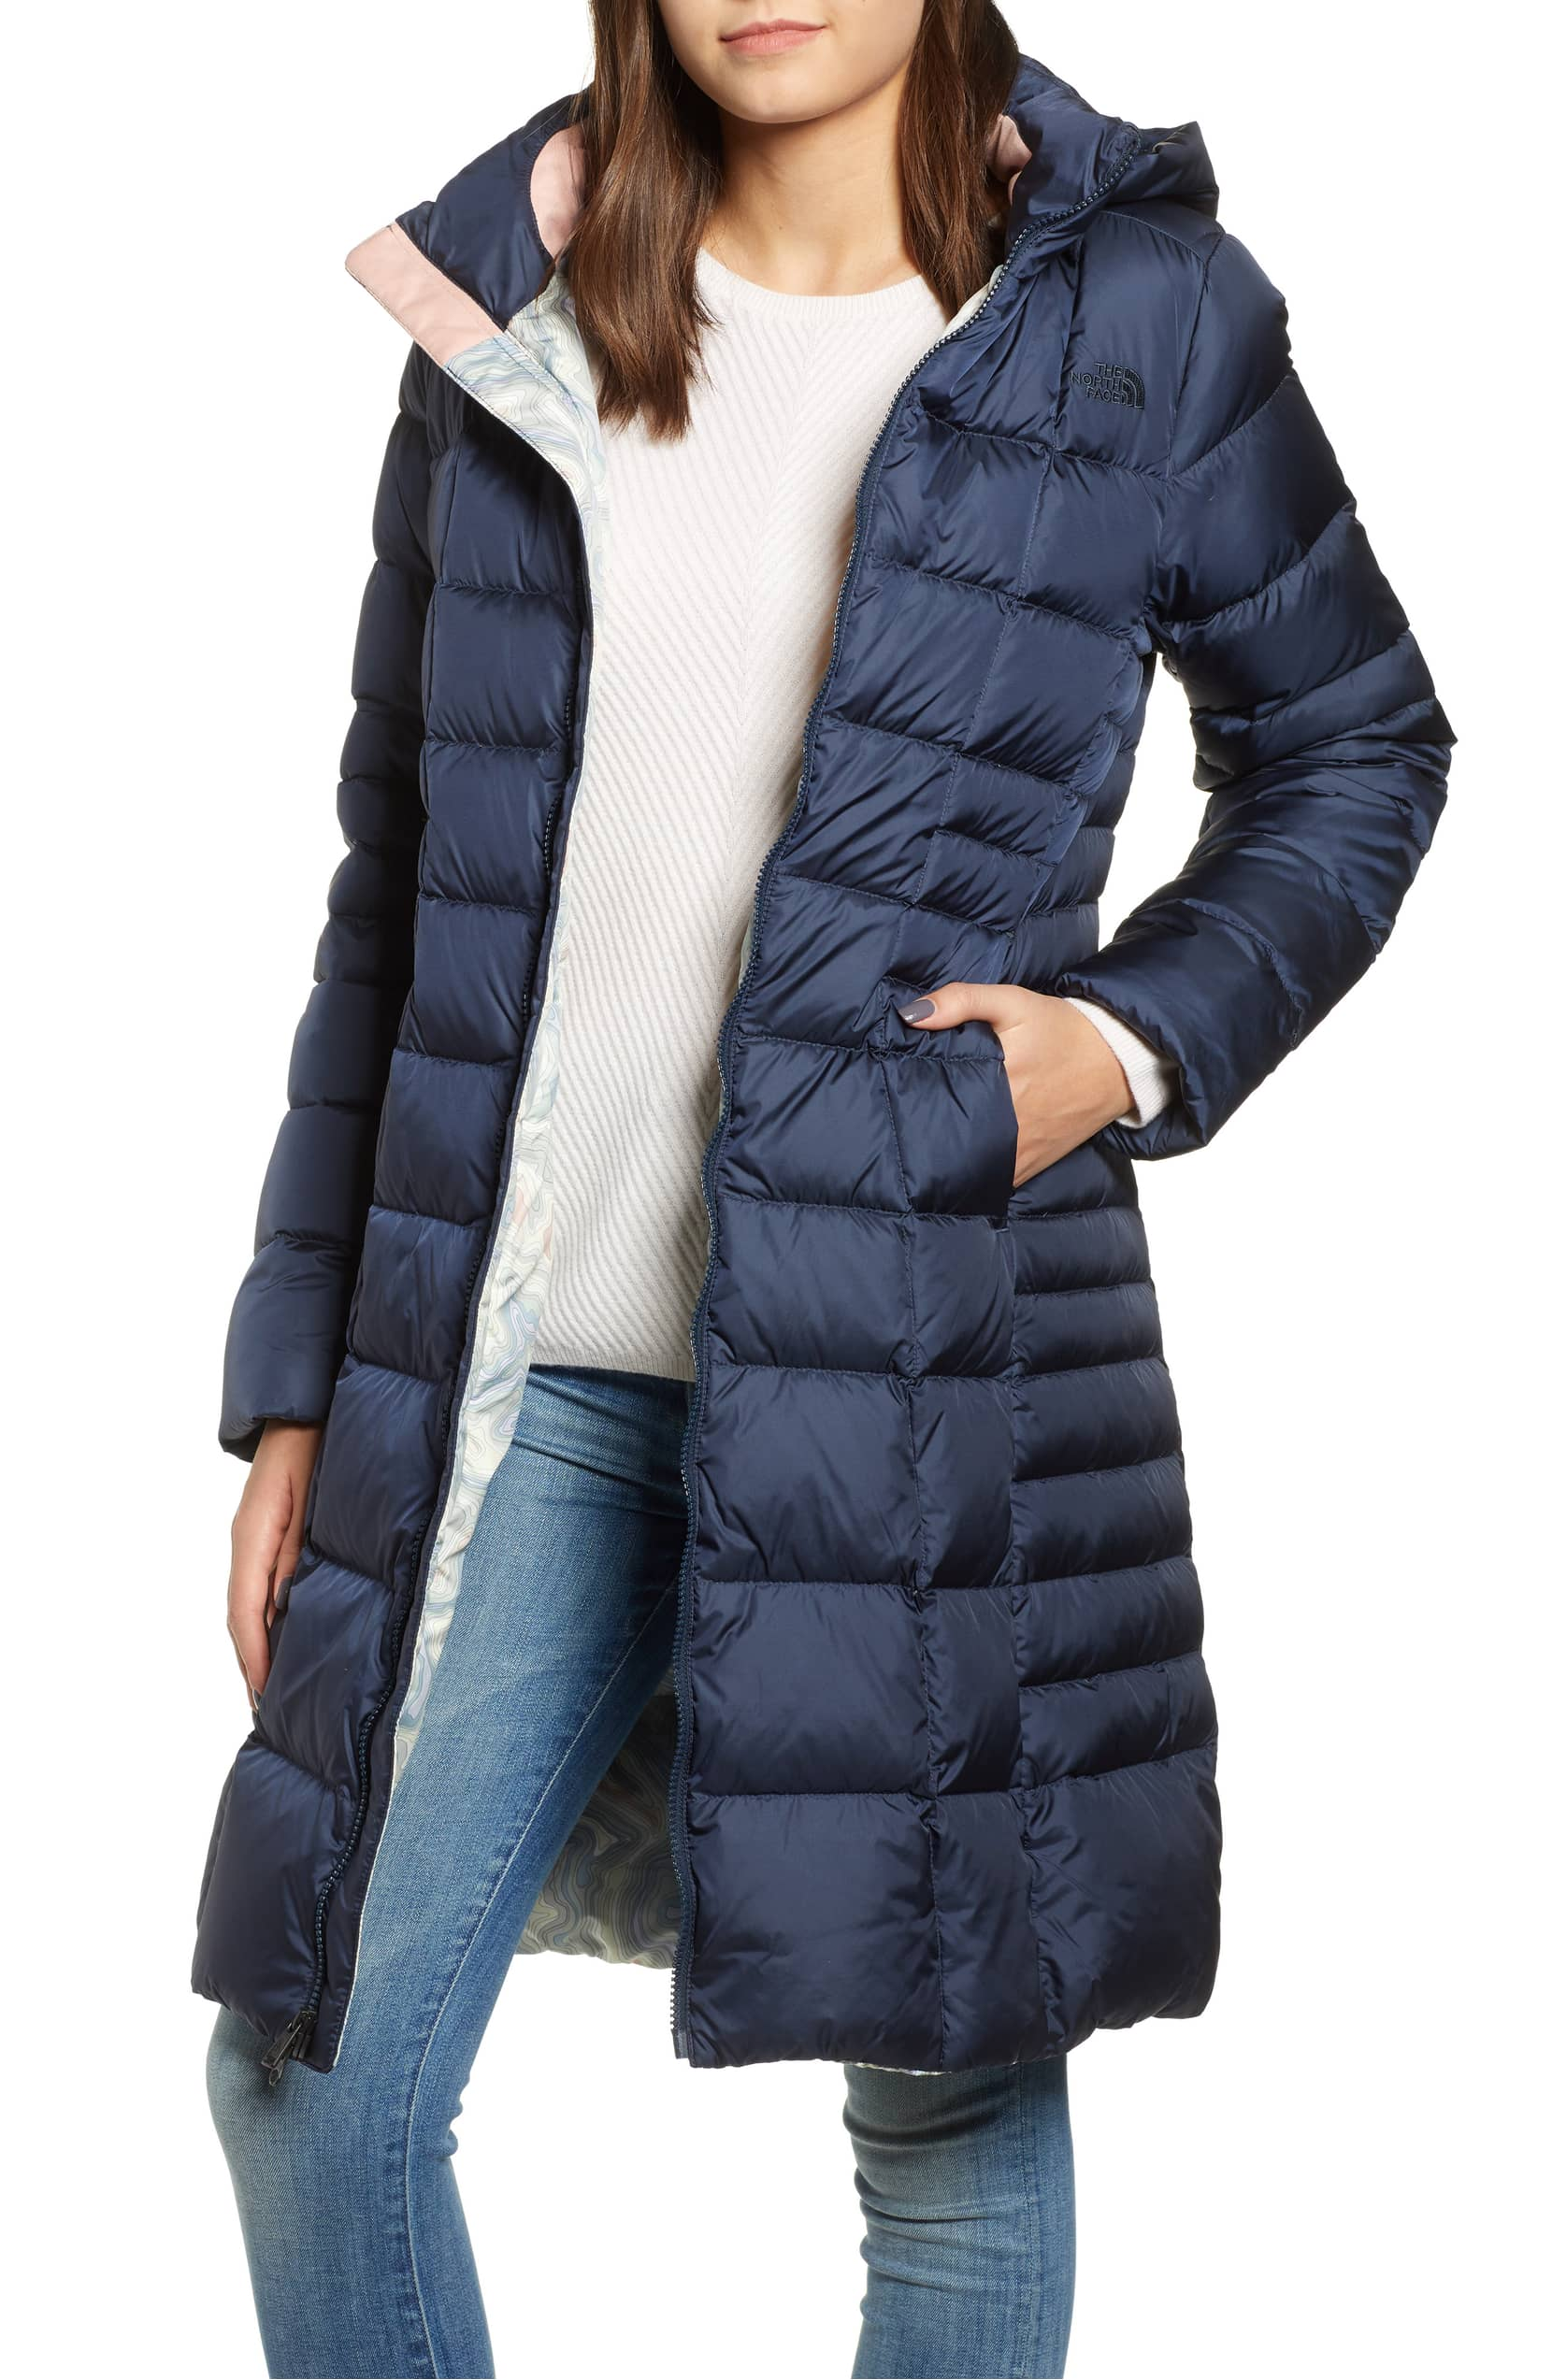 Flattering North Face Coats To Stay Warm This Winter